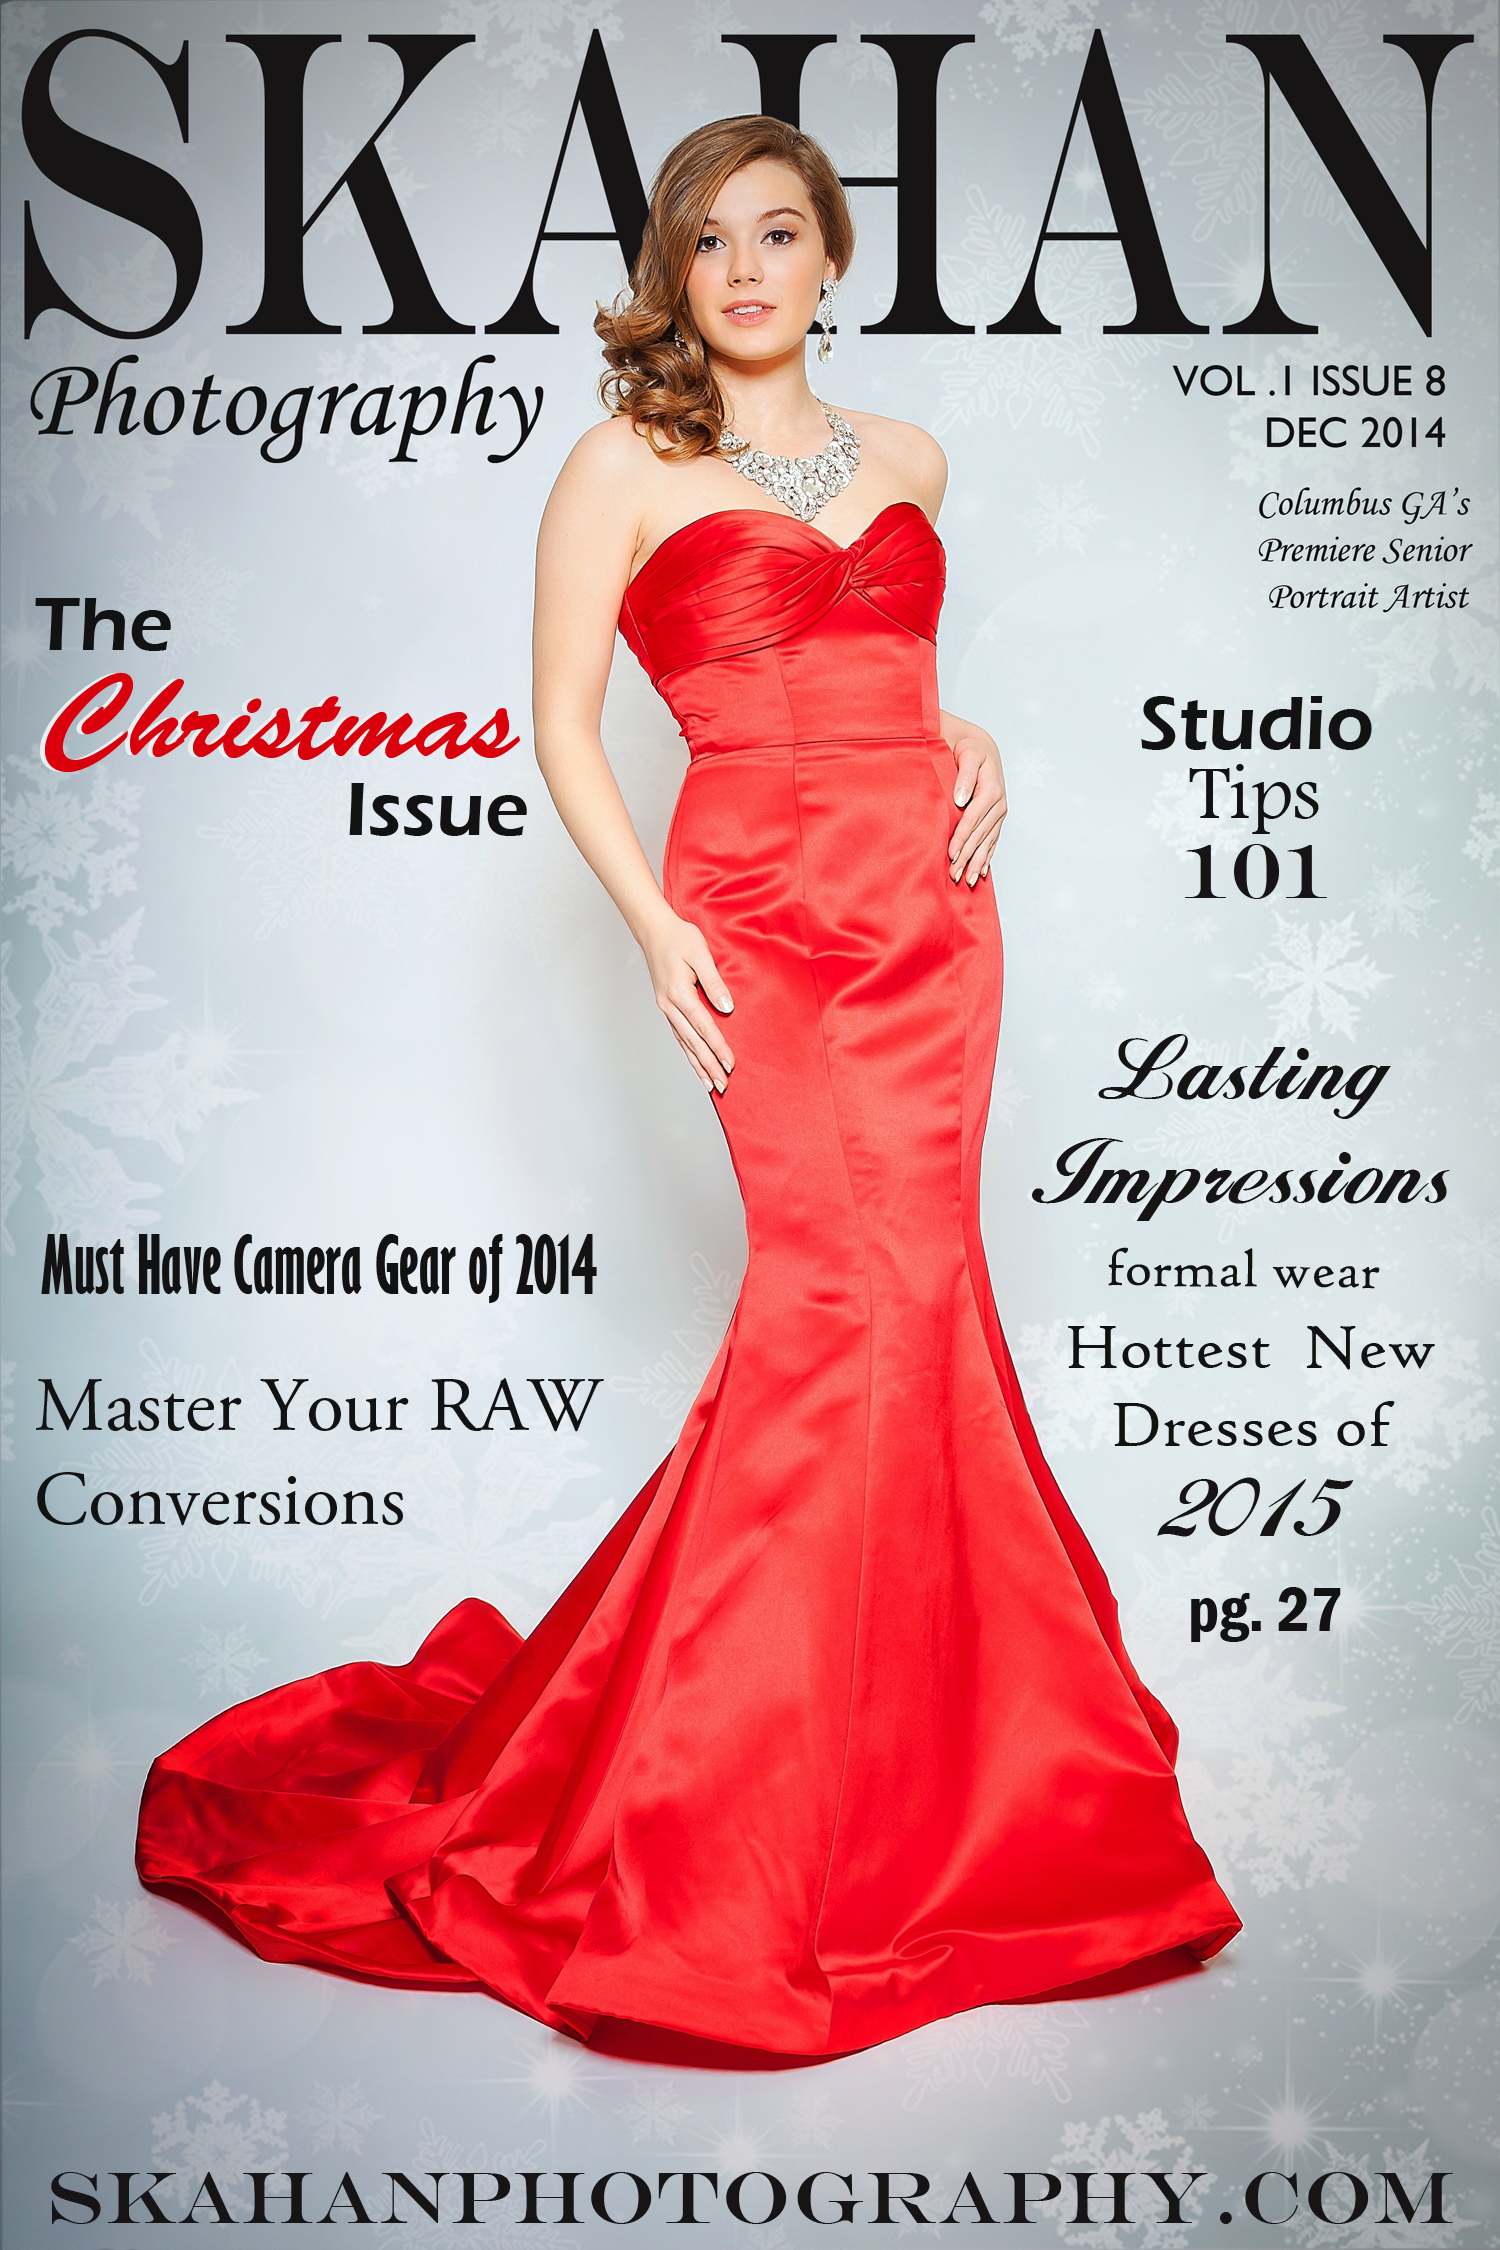 Volume 1 Issue 8 Dec 2014